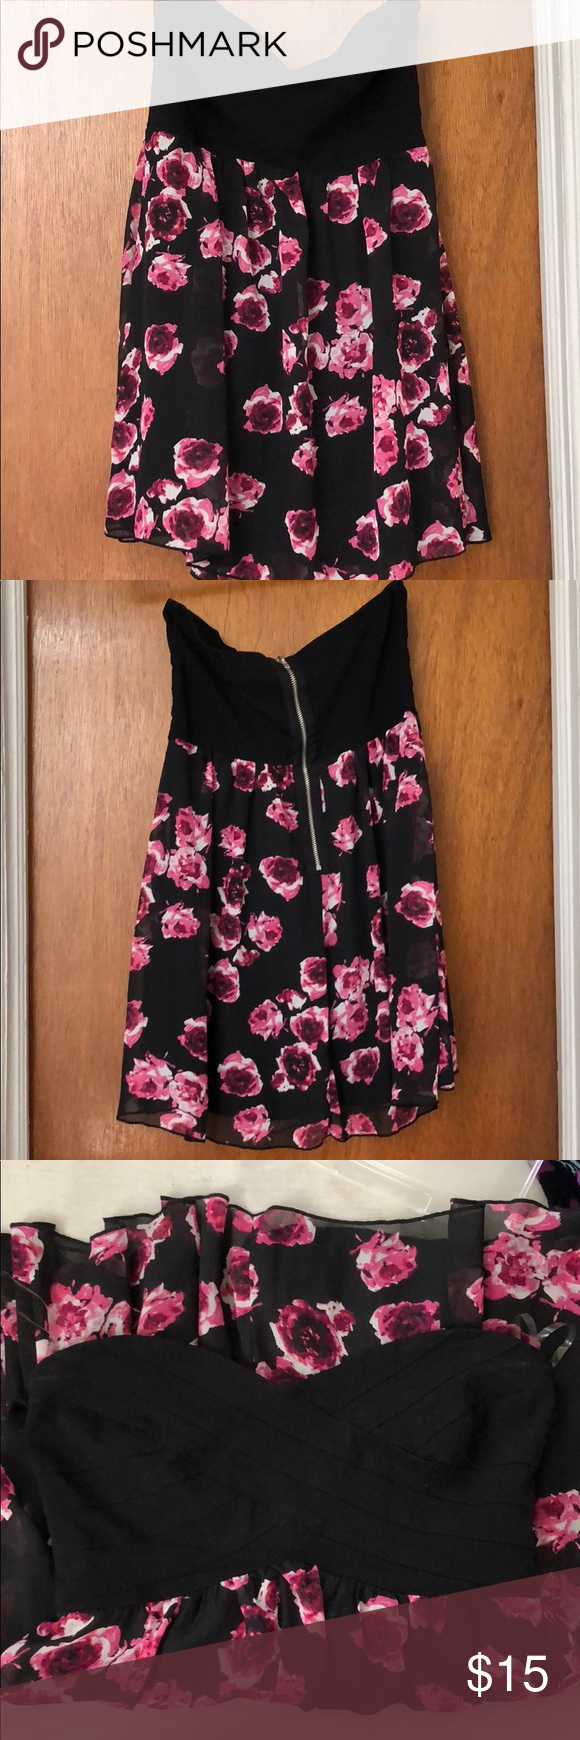 Black And Pink Floral Strapless Dress Worn Once On Vacation Short Strapless Dress Black On Top With Pi Strapless Floral Dress Clothes Design Strapless Dress [ 1740 x 580 Pixel ]